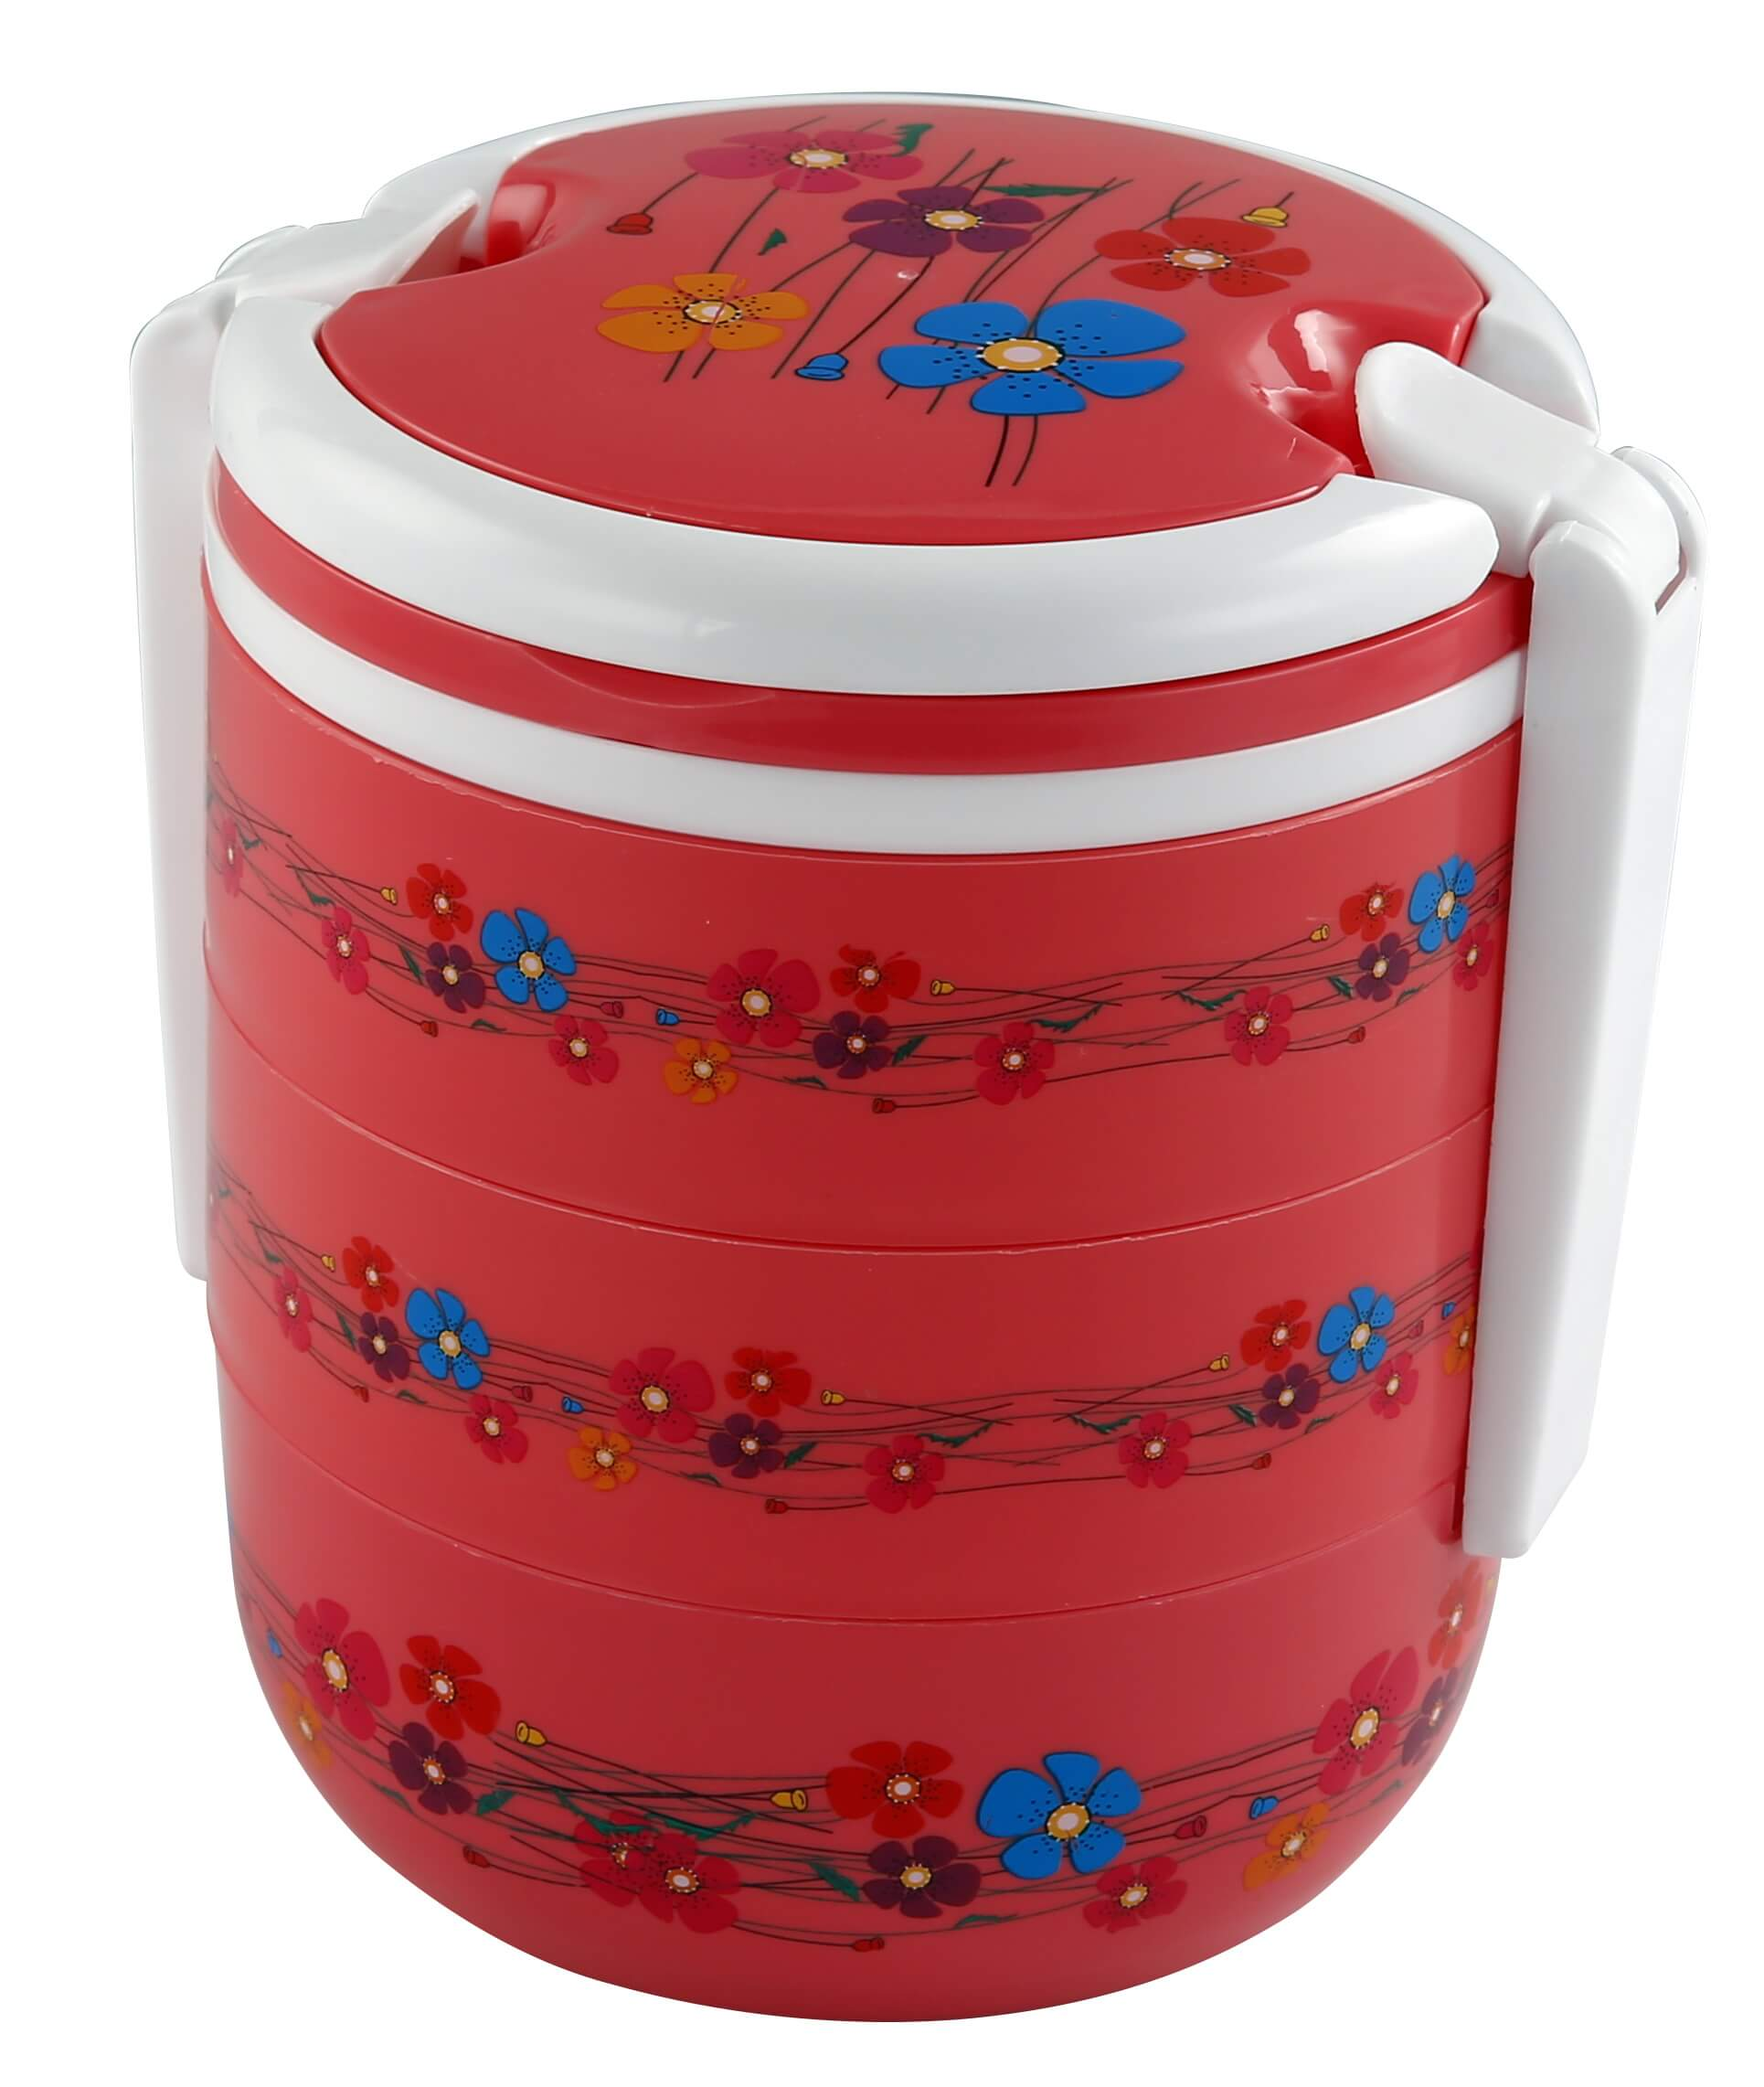 Round 3 Bati Tiffin Box – Pink